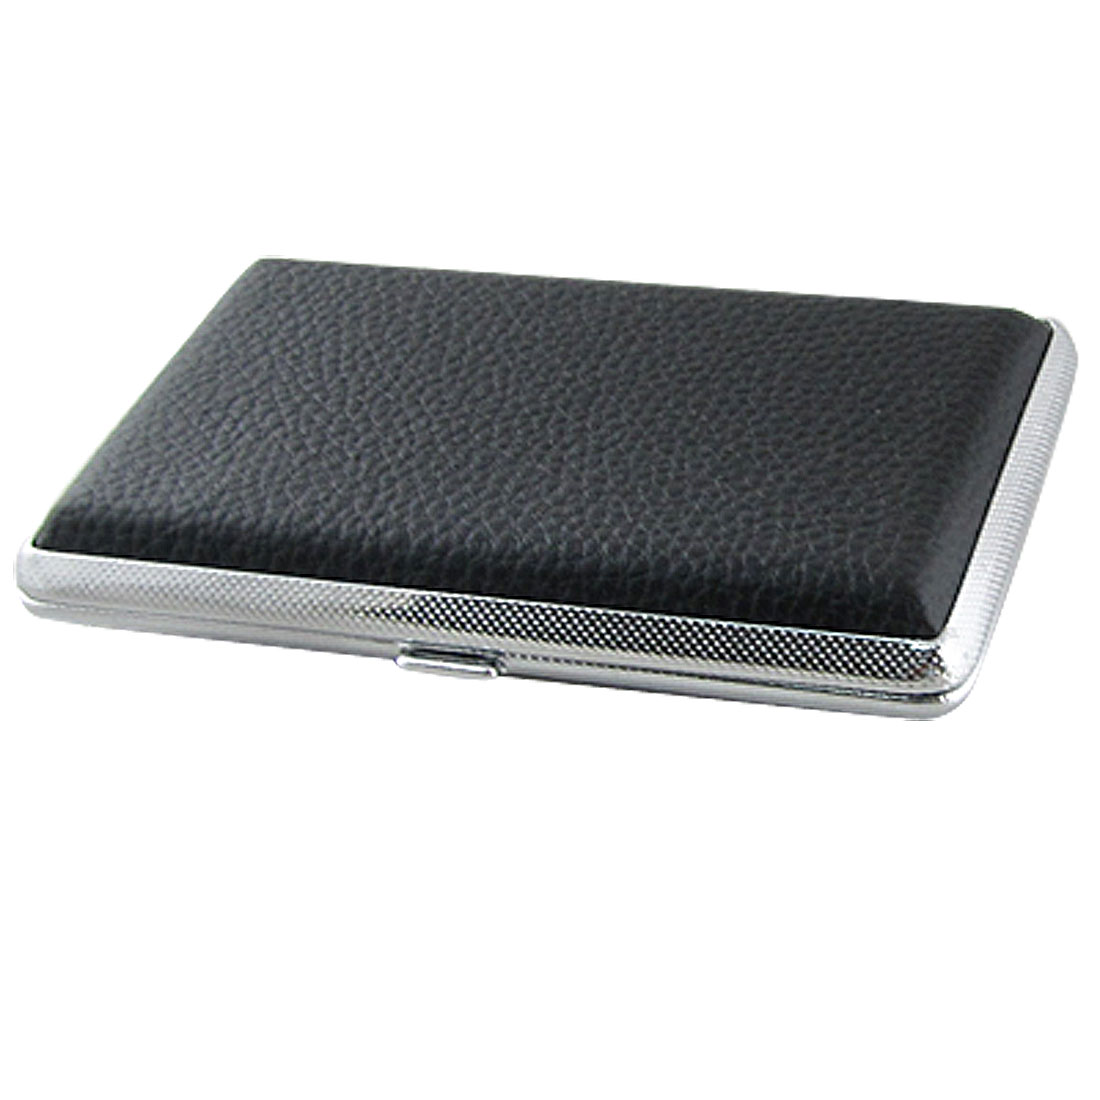 Faux Leather Metal Cigarette Box Case Holder Gift Black for Men